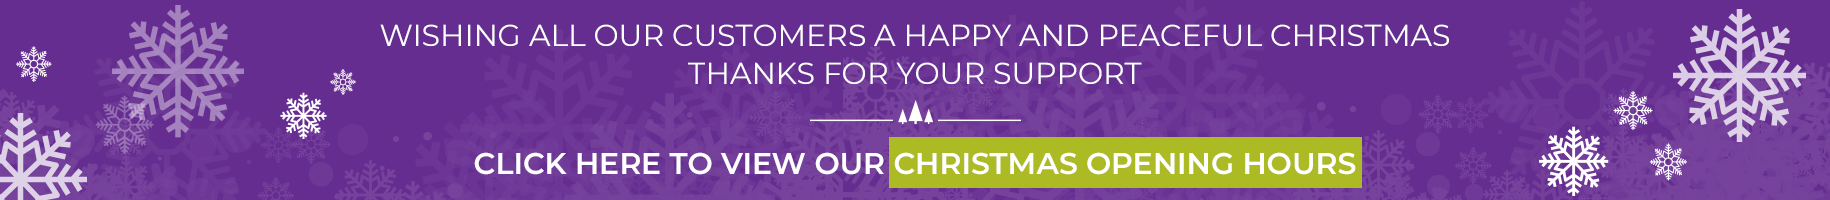 Click here to view our Christmas opening hours